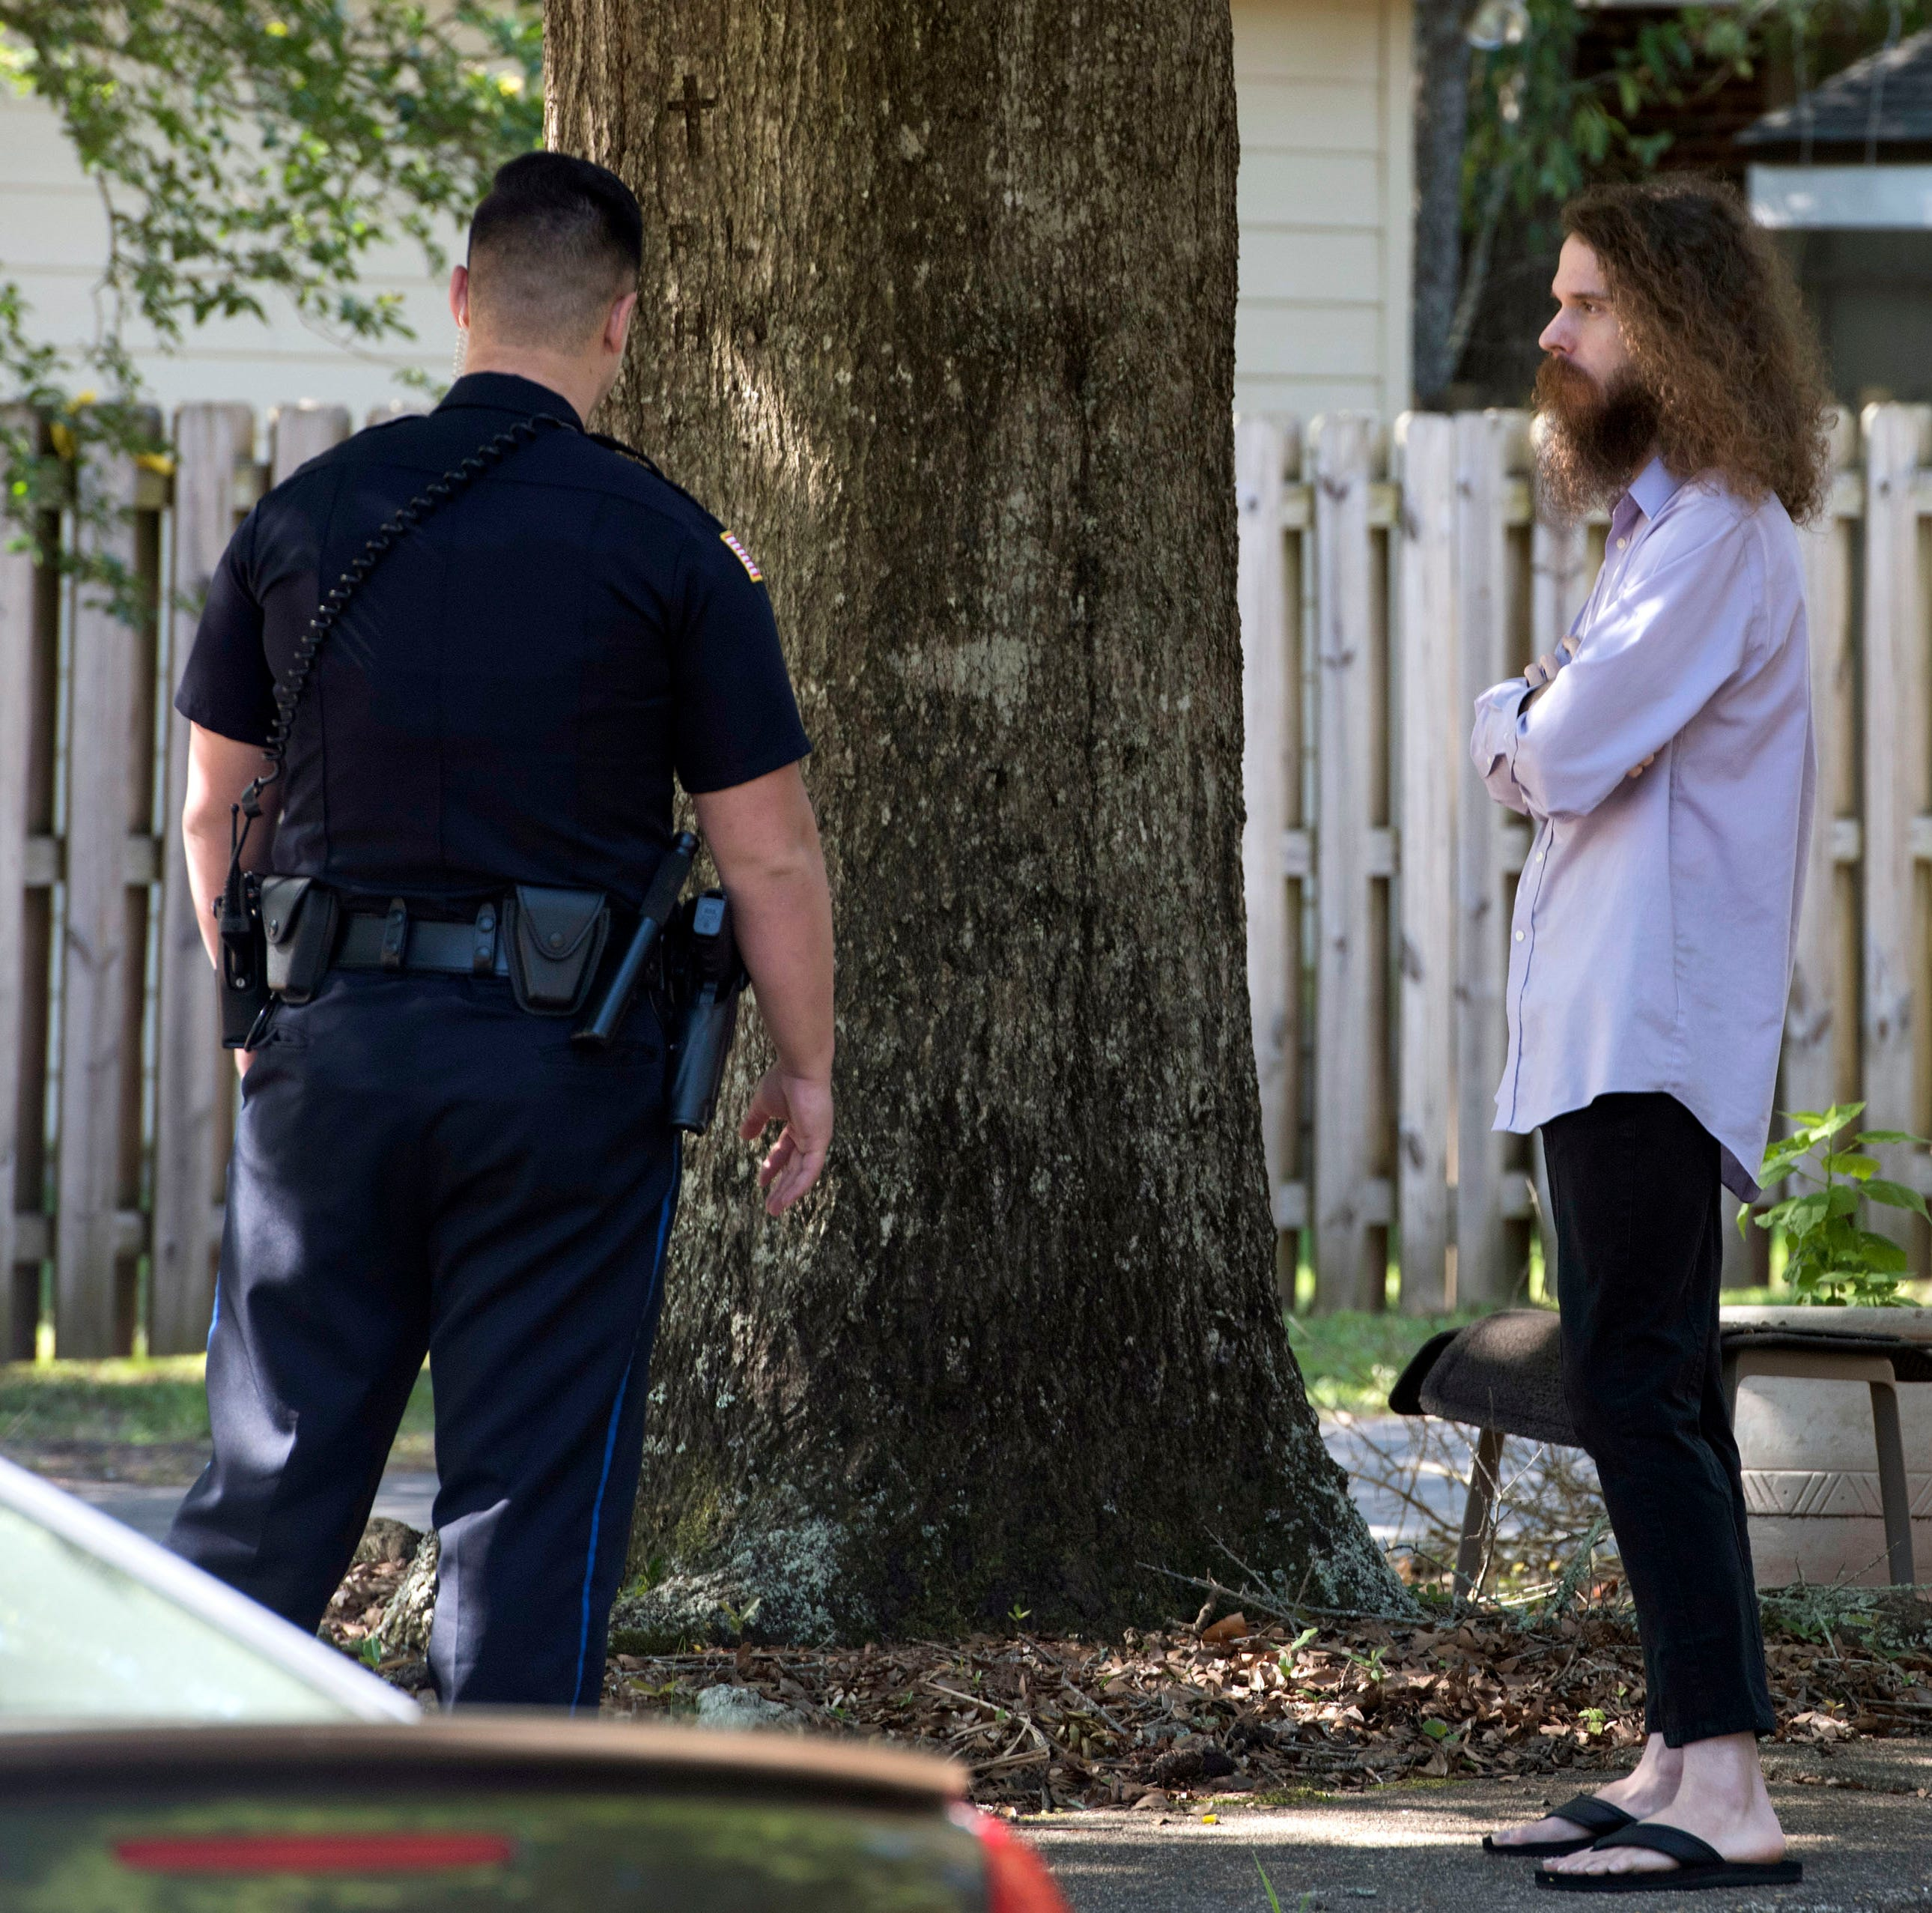 Pensacola man lived with mom's body for 2 days before police were called, PPD says